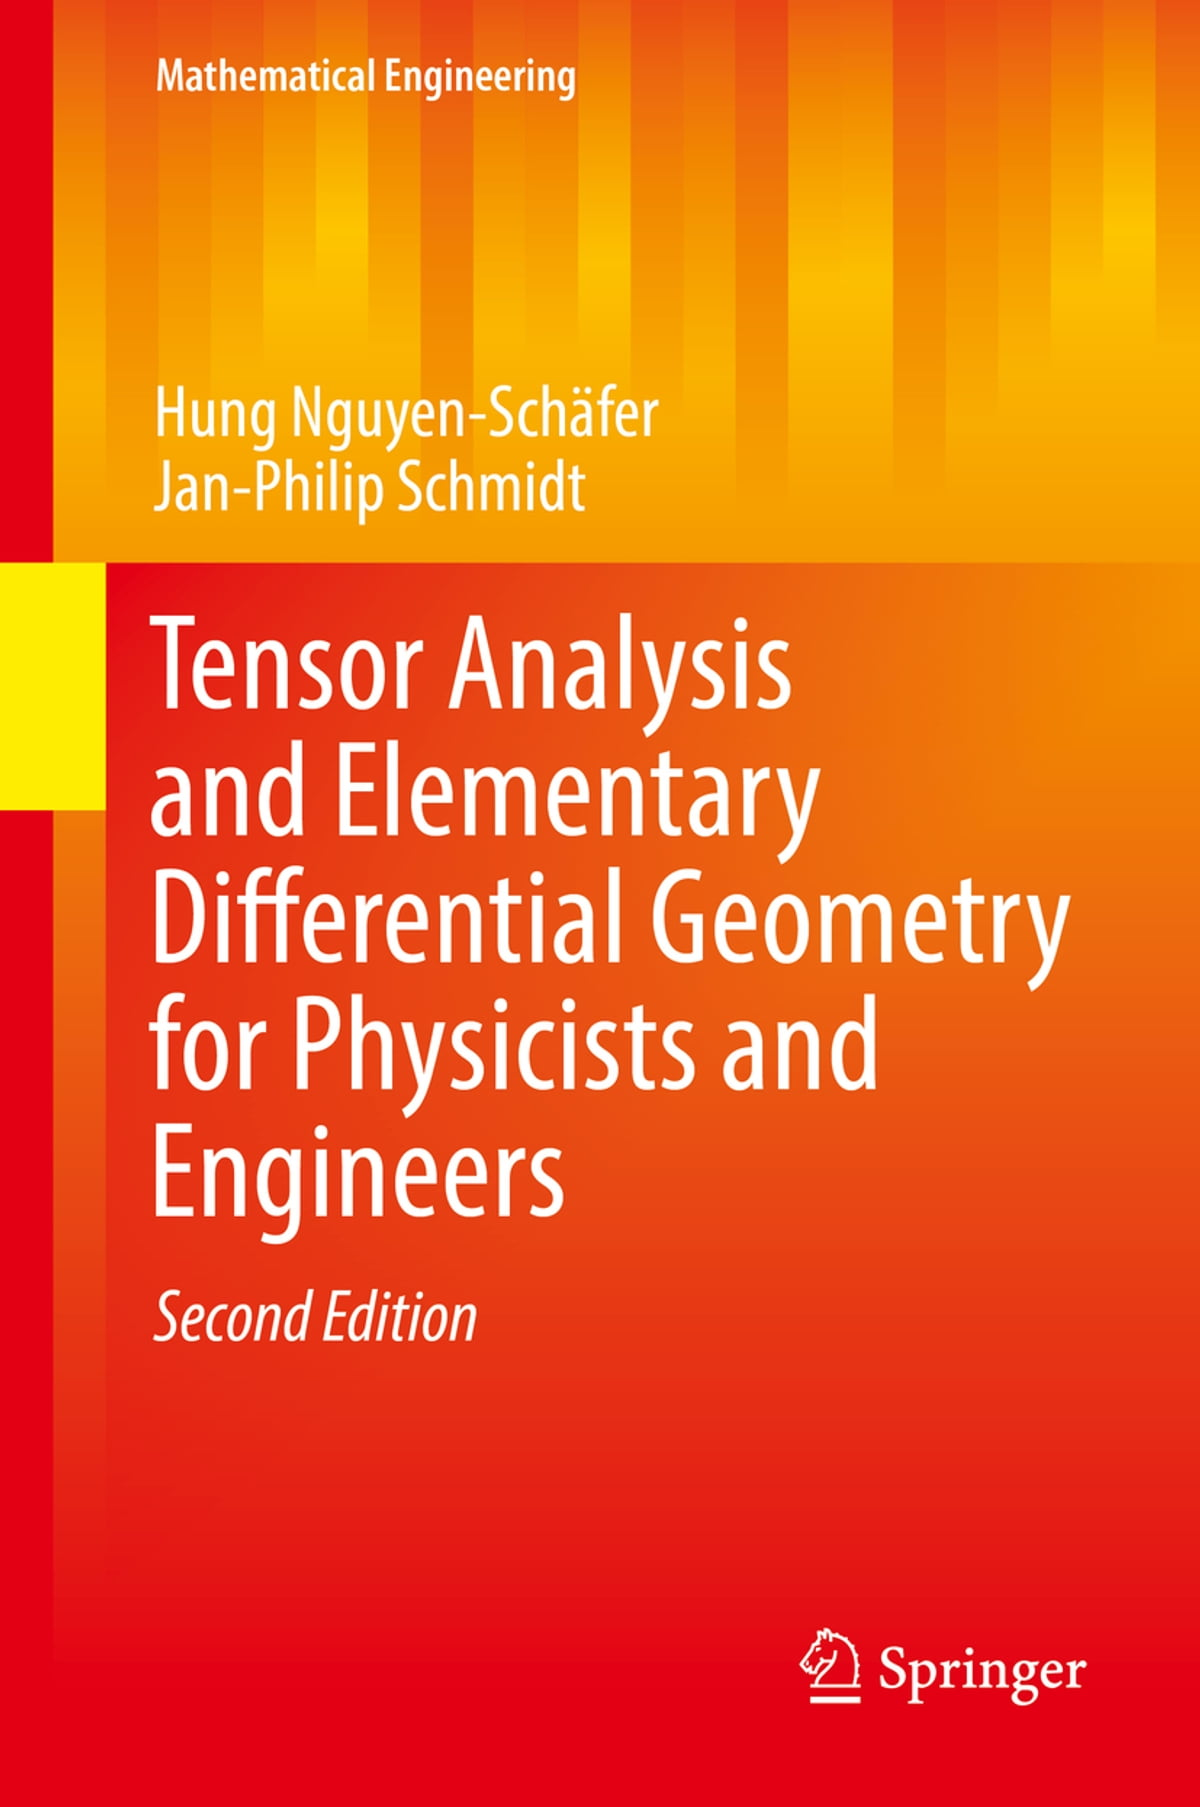 Tensor analysis and elementary differential geometry for physicists and engineers ebook by hung nguyen sch fer 9783662484975 rakuten kobo